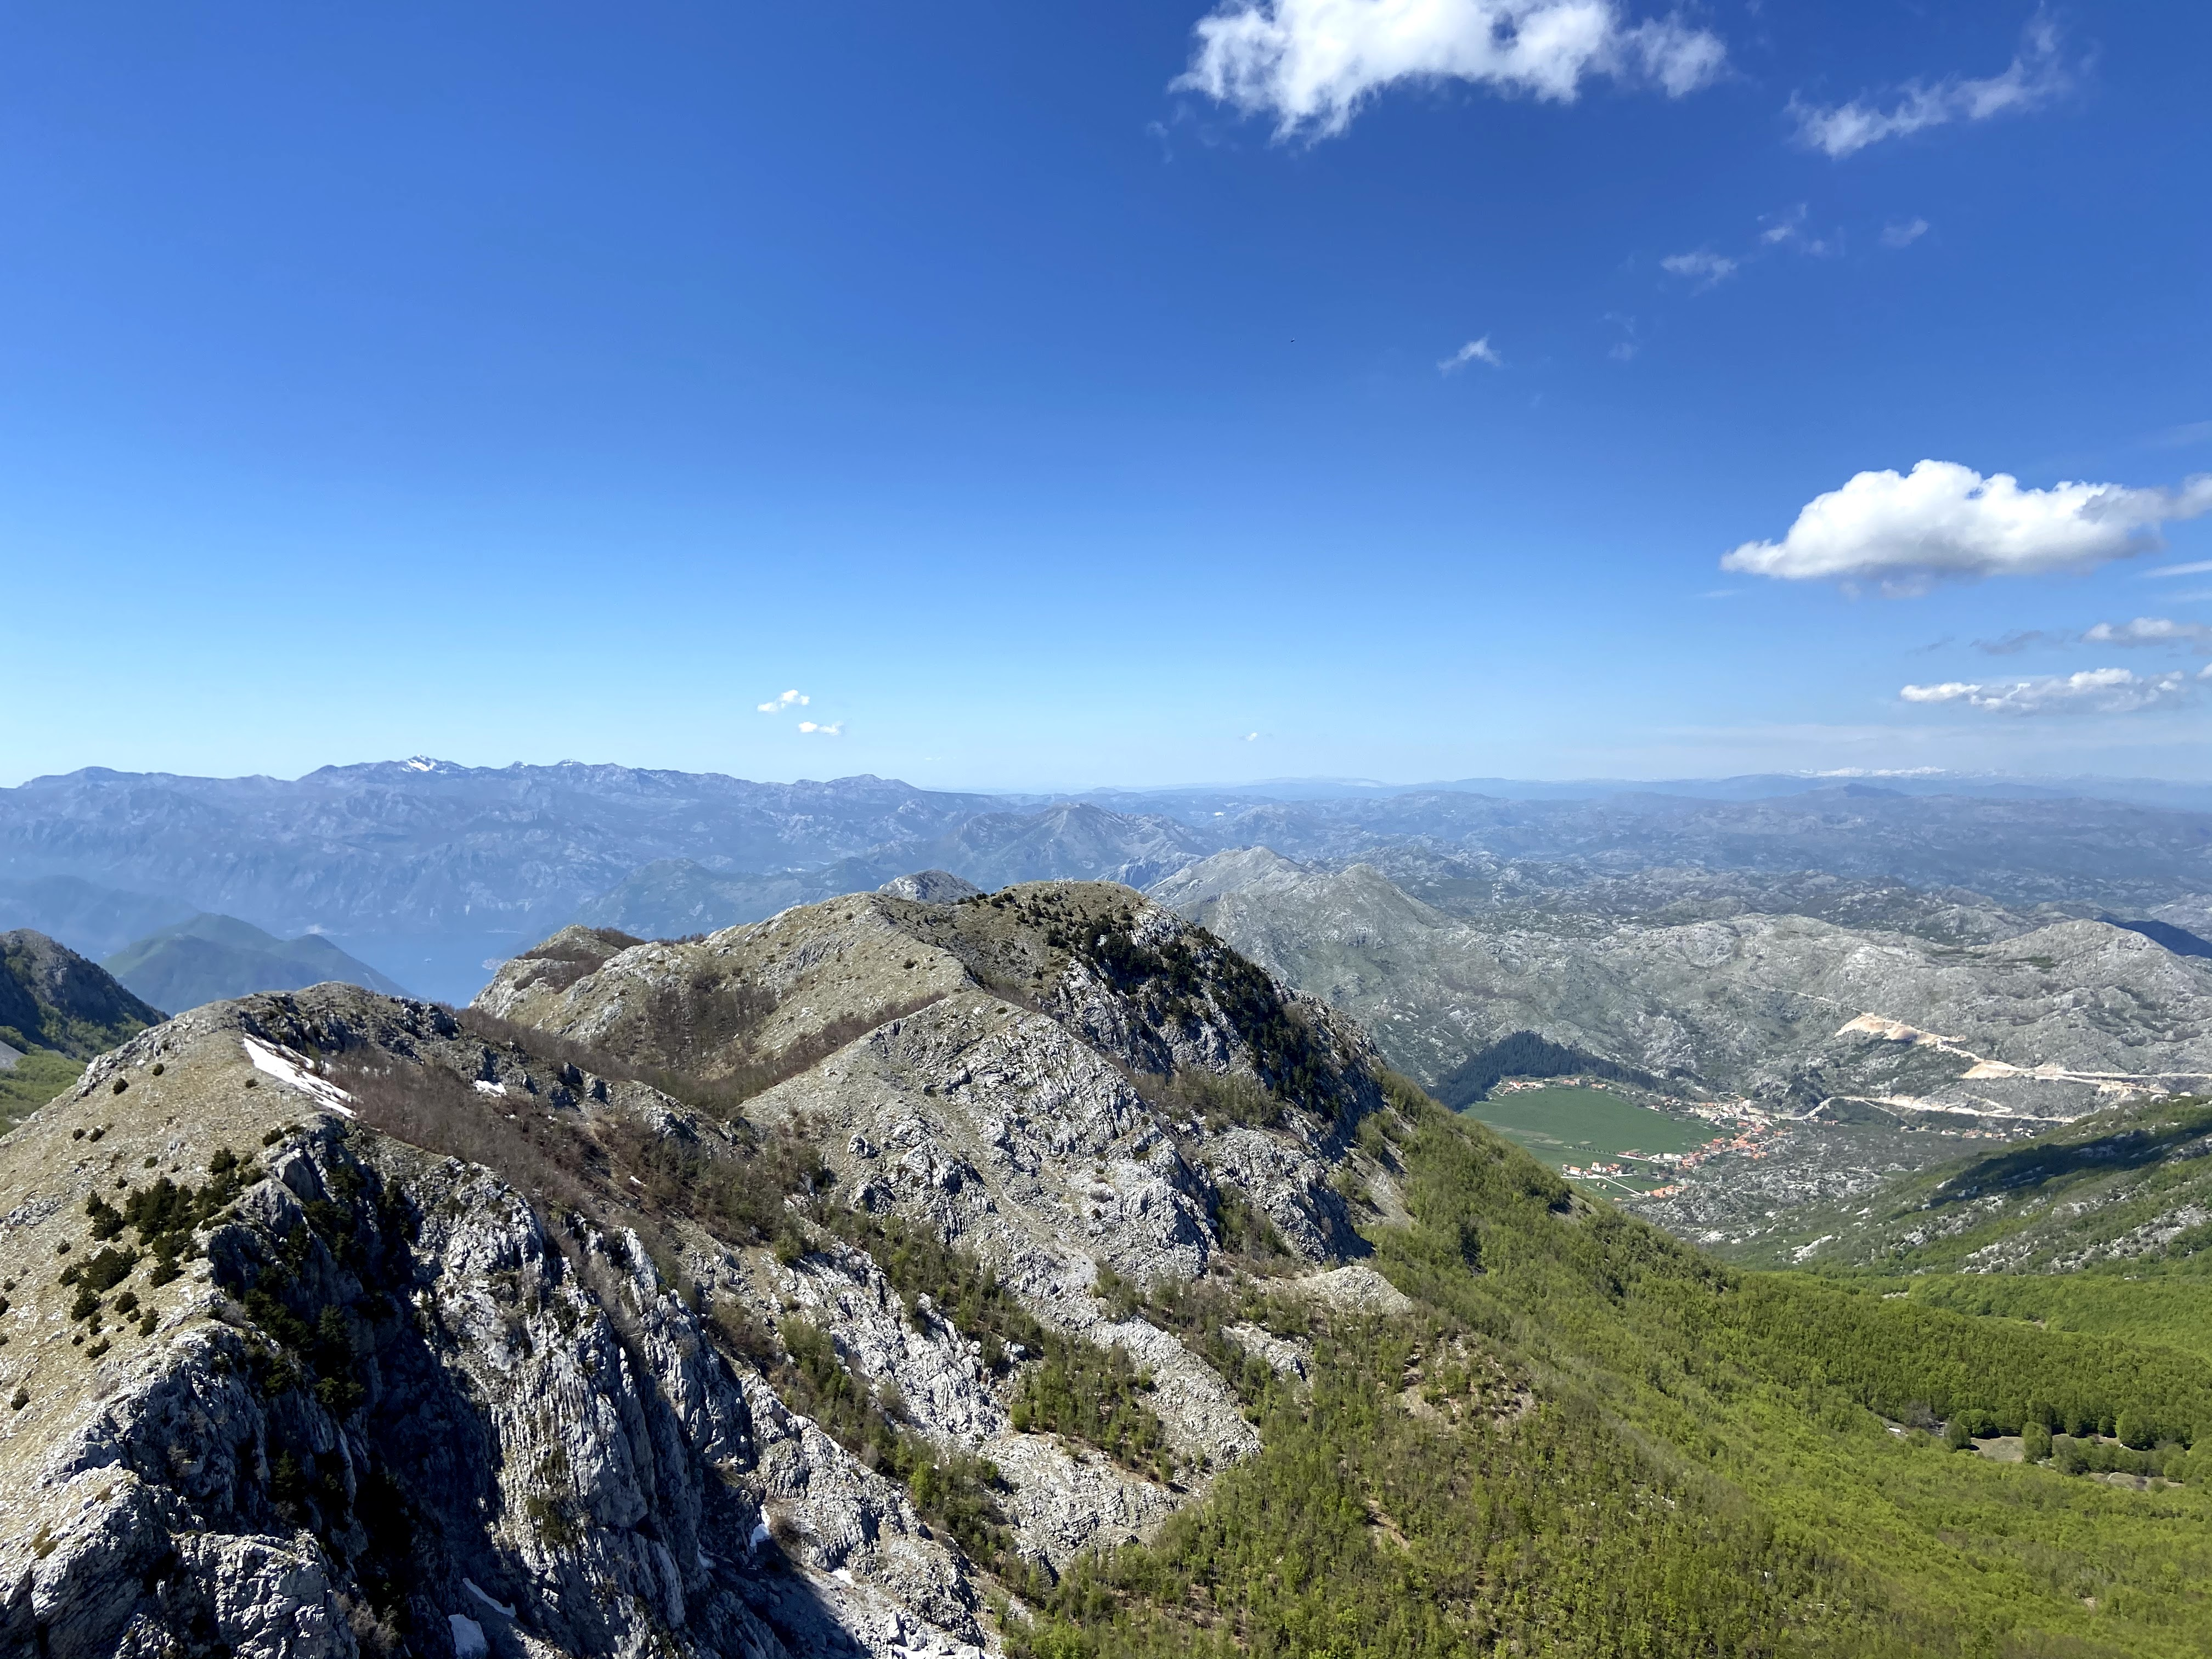 Panoramic views of rock and mountains everywhere into the far distance.